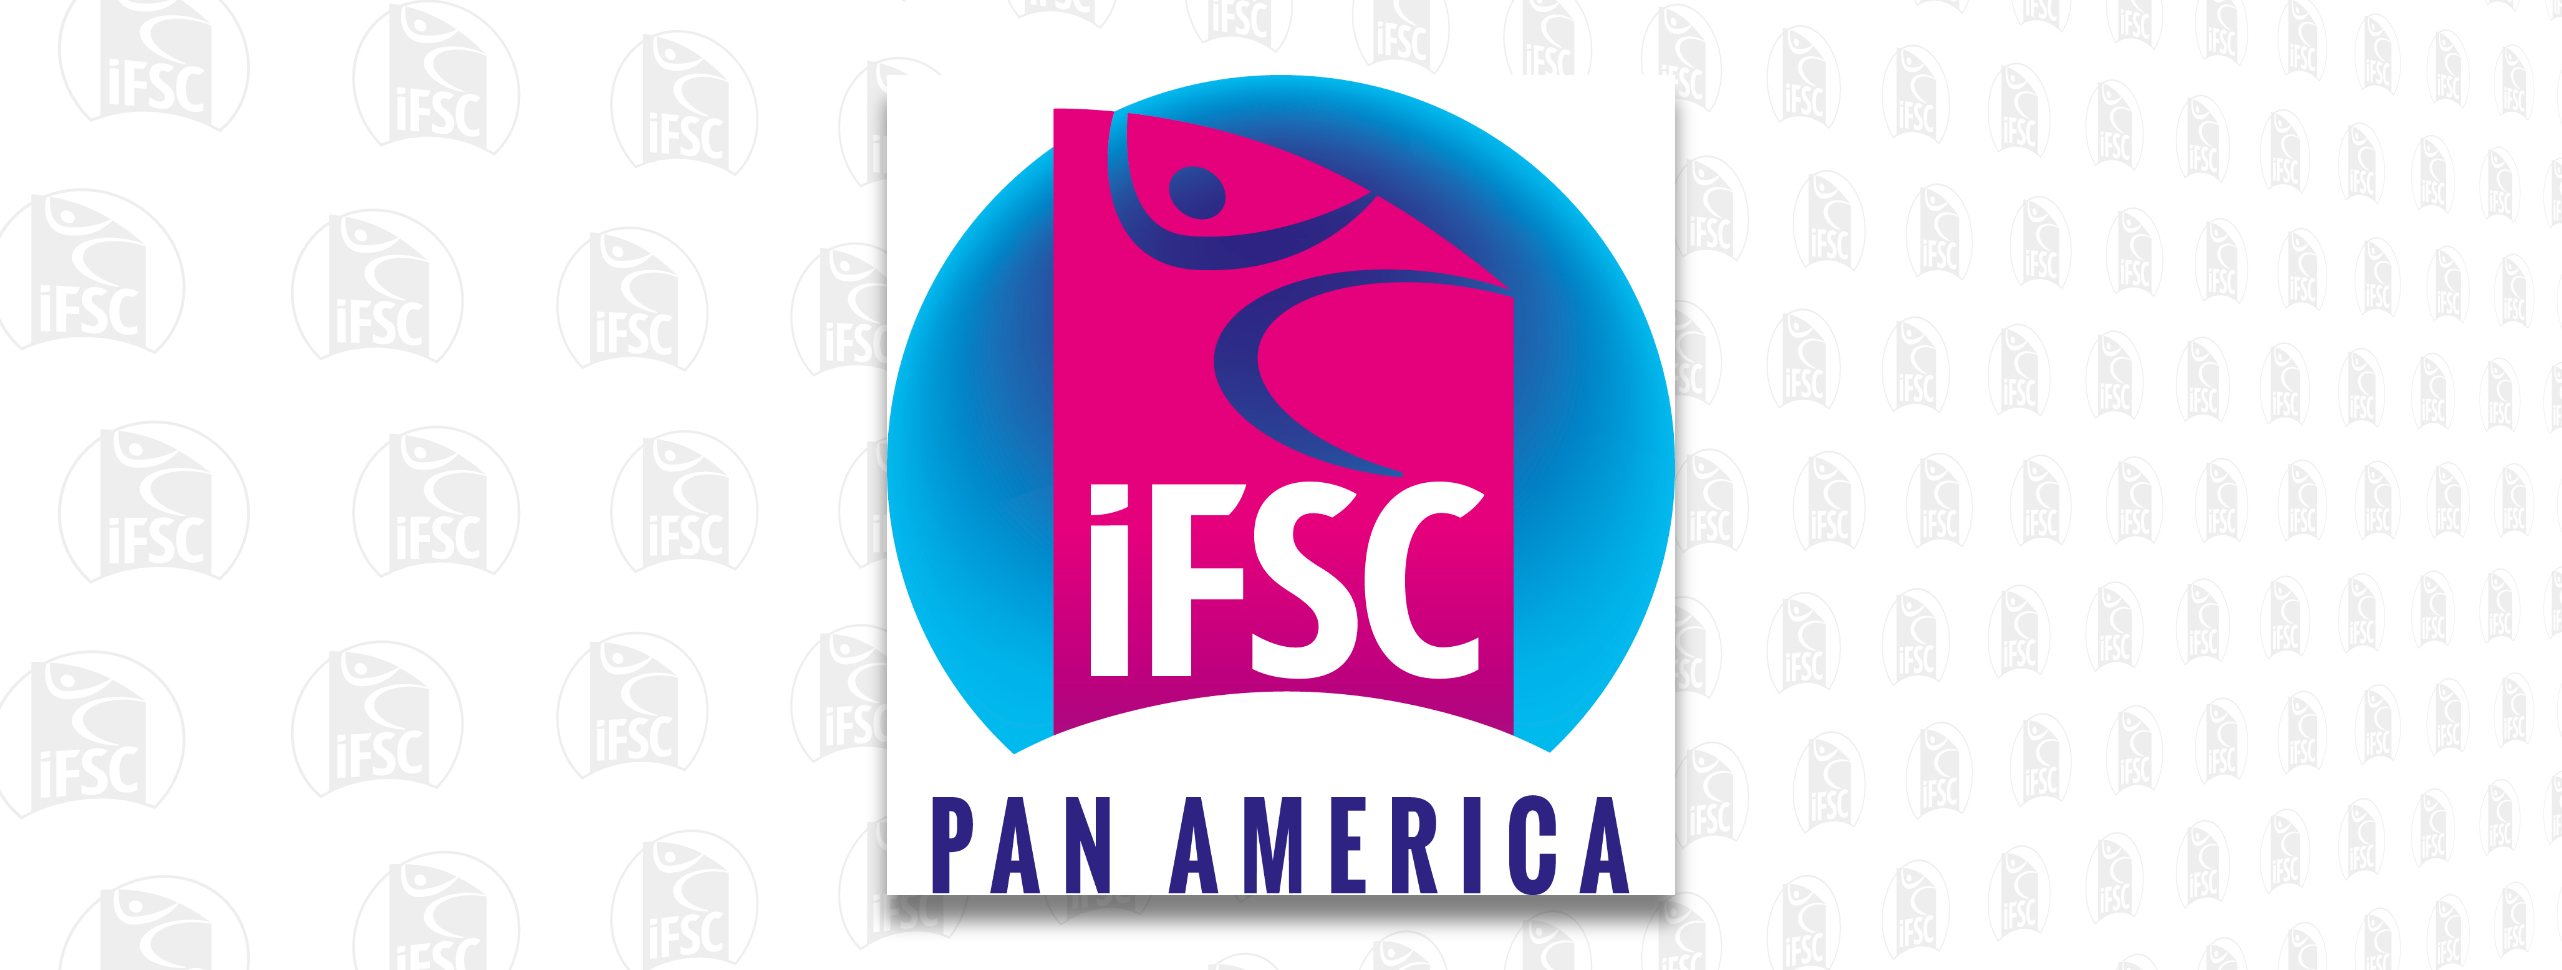 PABLO HILEWSKI ELECTED PRESIDENT OF THE IFSC PAN AMERICAN COUNCIL